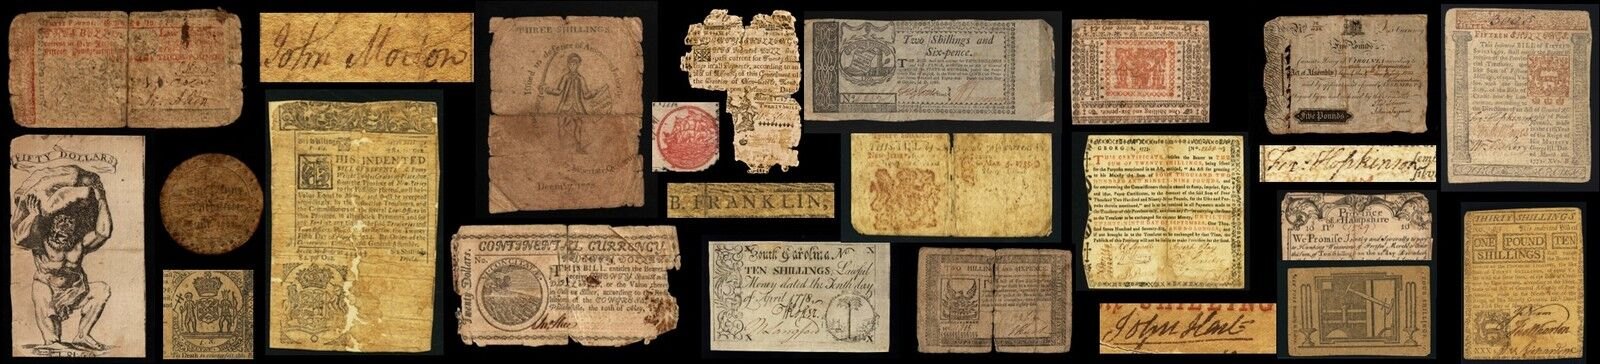 MadSciGuy's Colonial Currency Shop